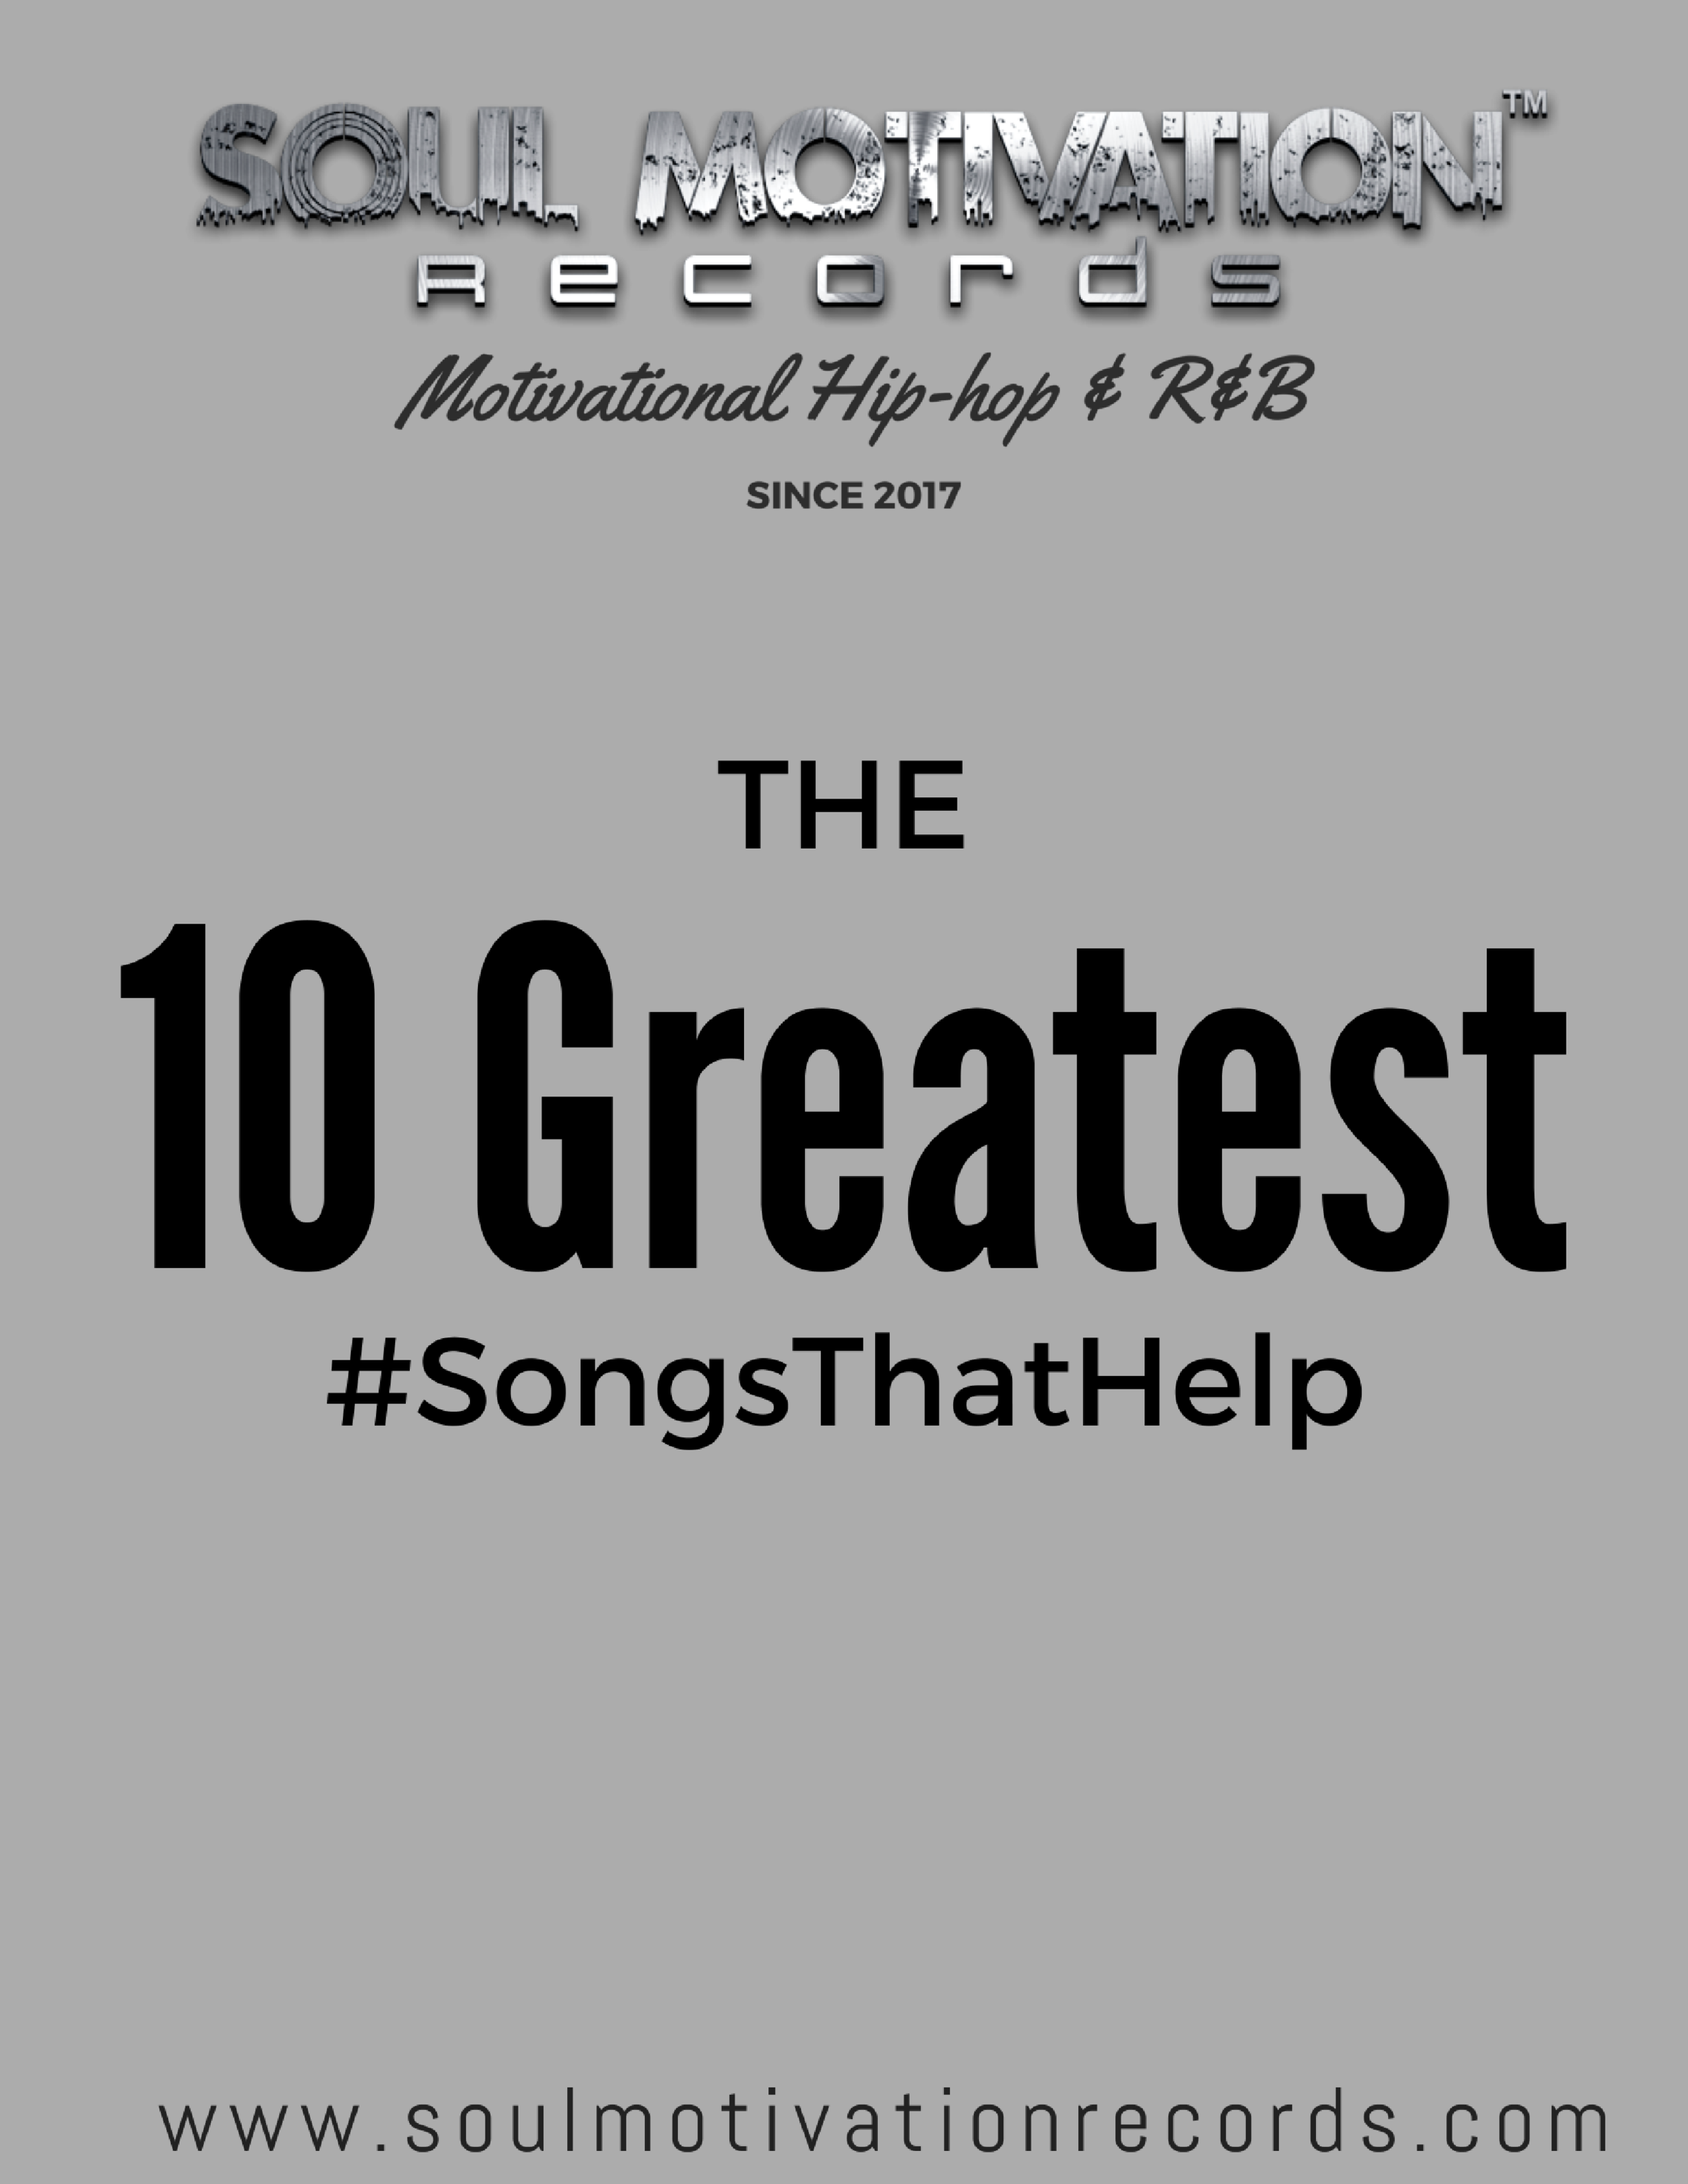 Get your FREE PDF of the 10 Greatest Songs That Help! - Just enter your name and email and get instant access to our carefully cultivated list of songs that are designed to inspire and uplift you! Keep this PDF handy and always have the power of music at your fingertips!